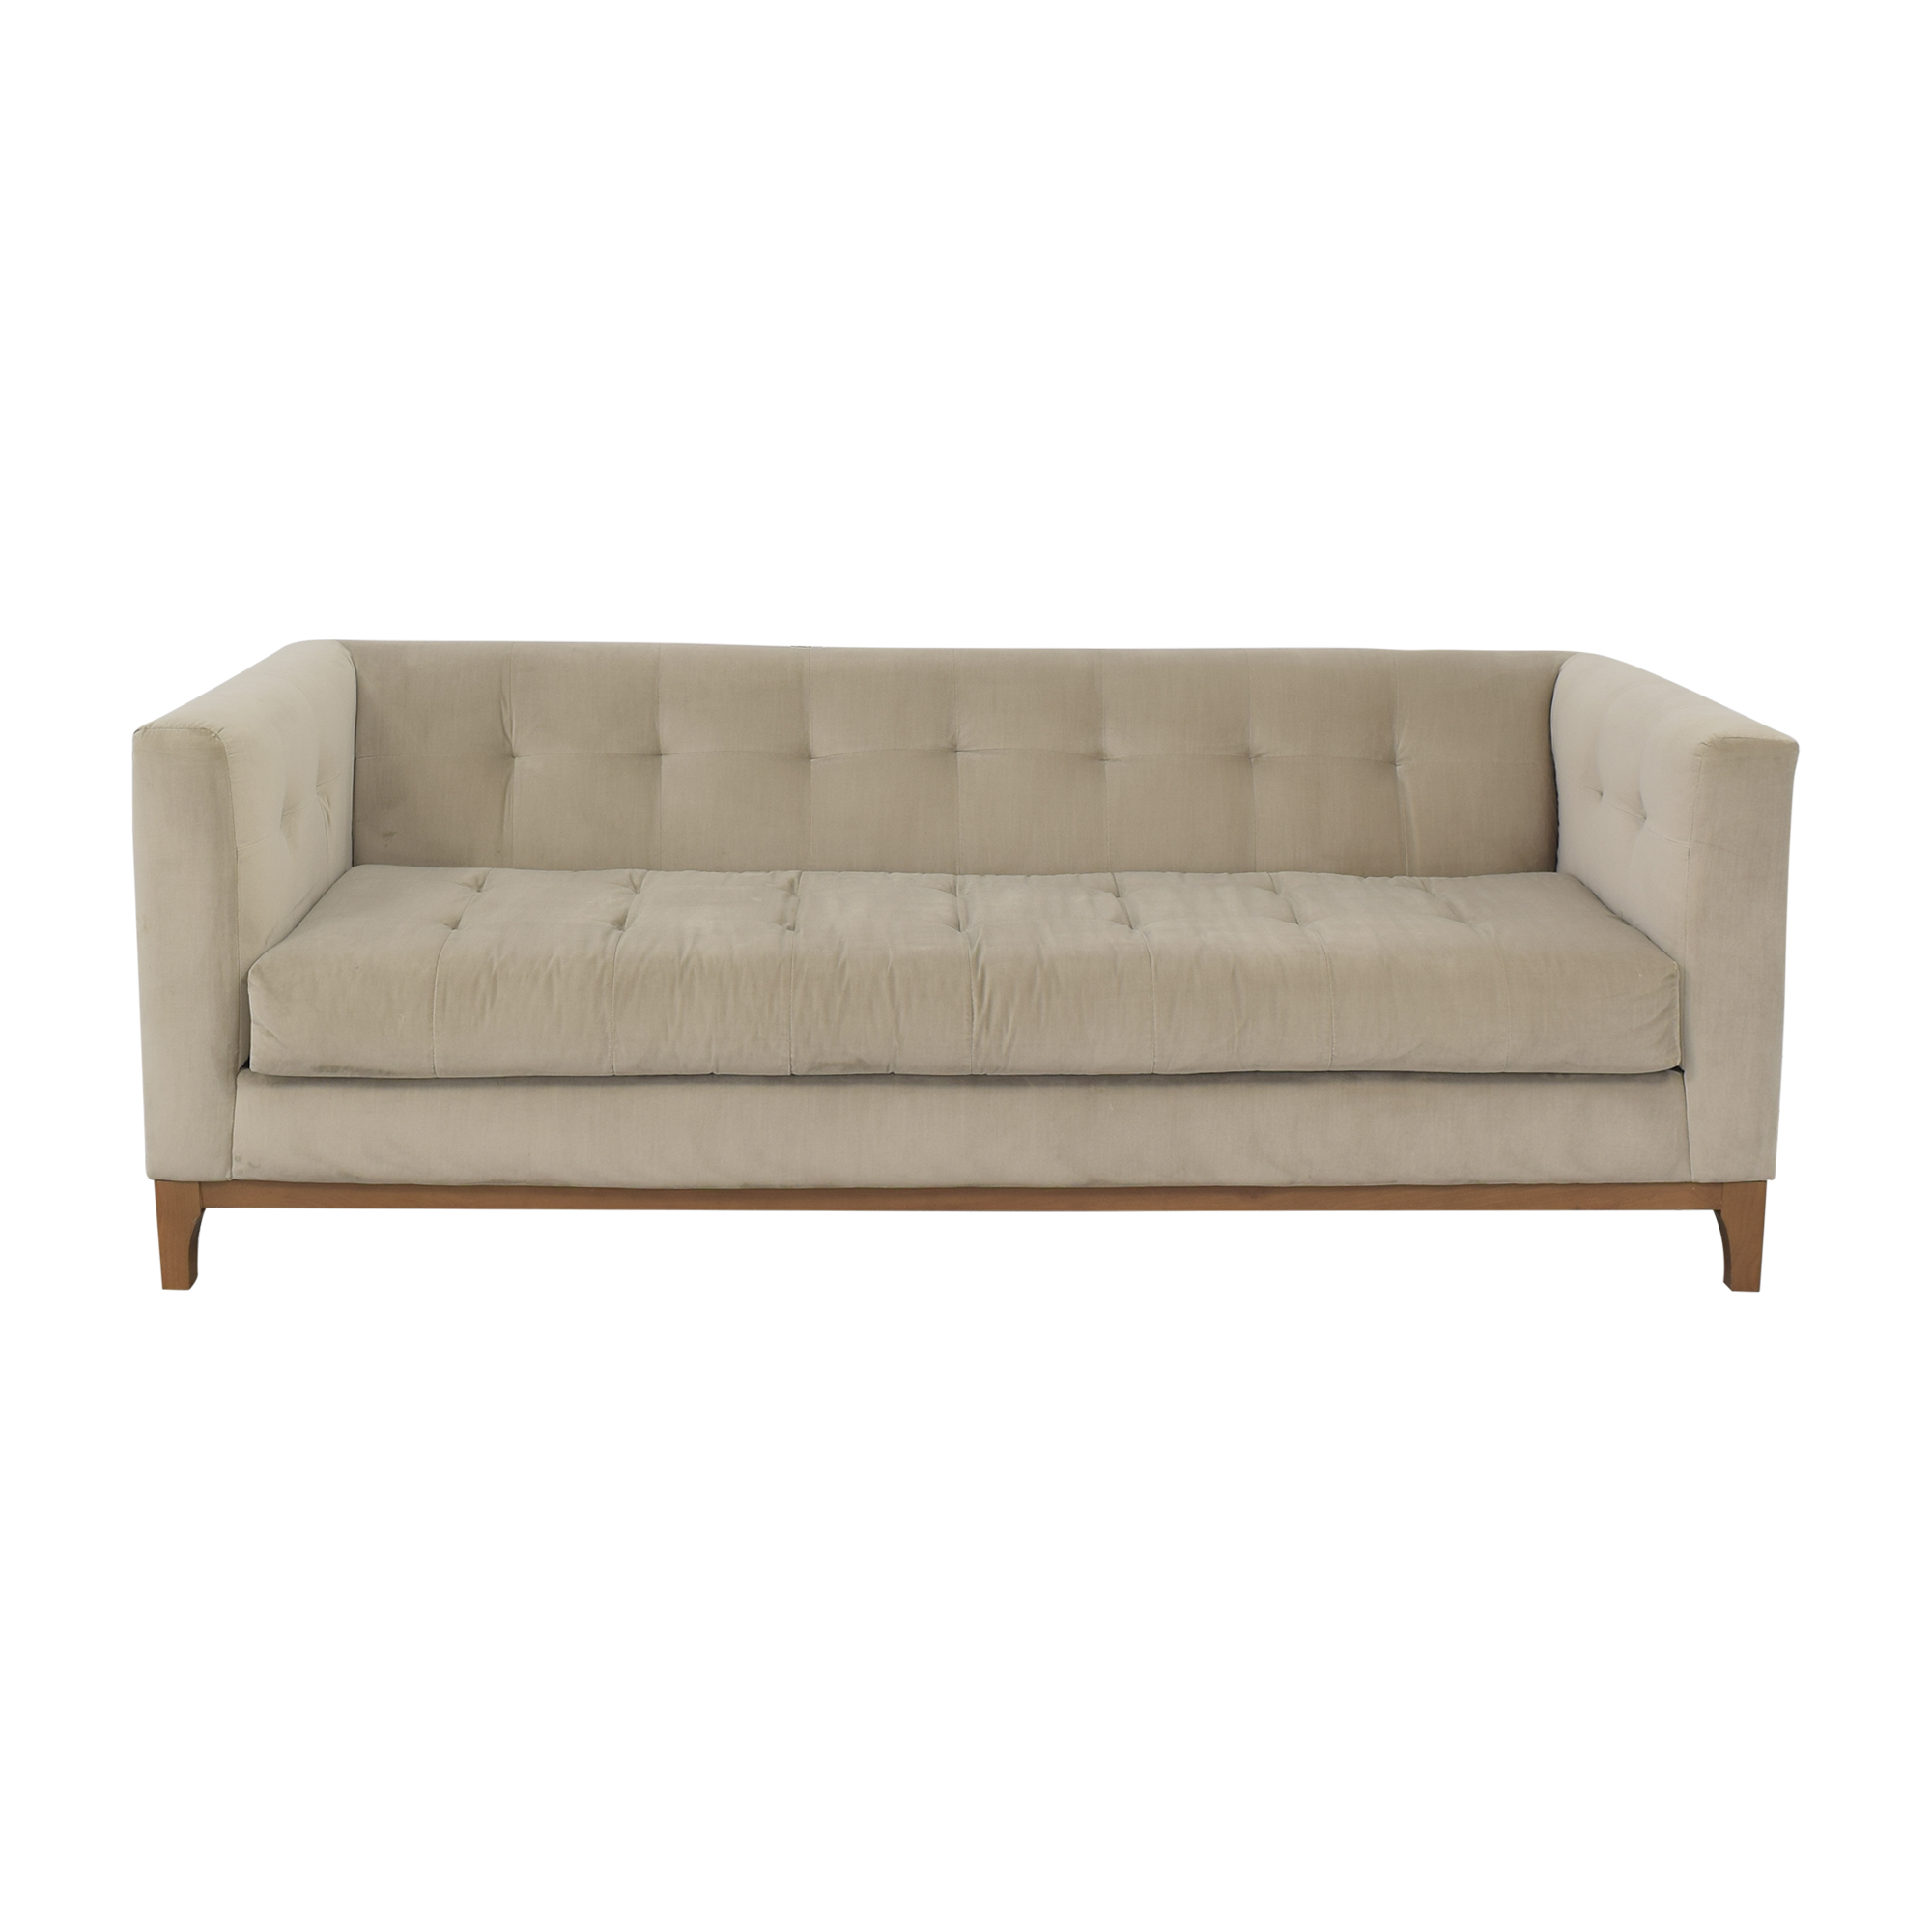 Macy's Macy's Martha Stewart Collection Brookline Sofa price